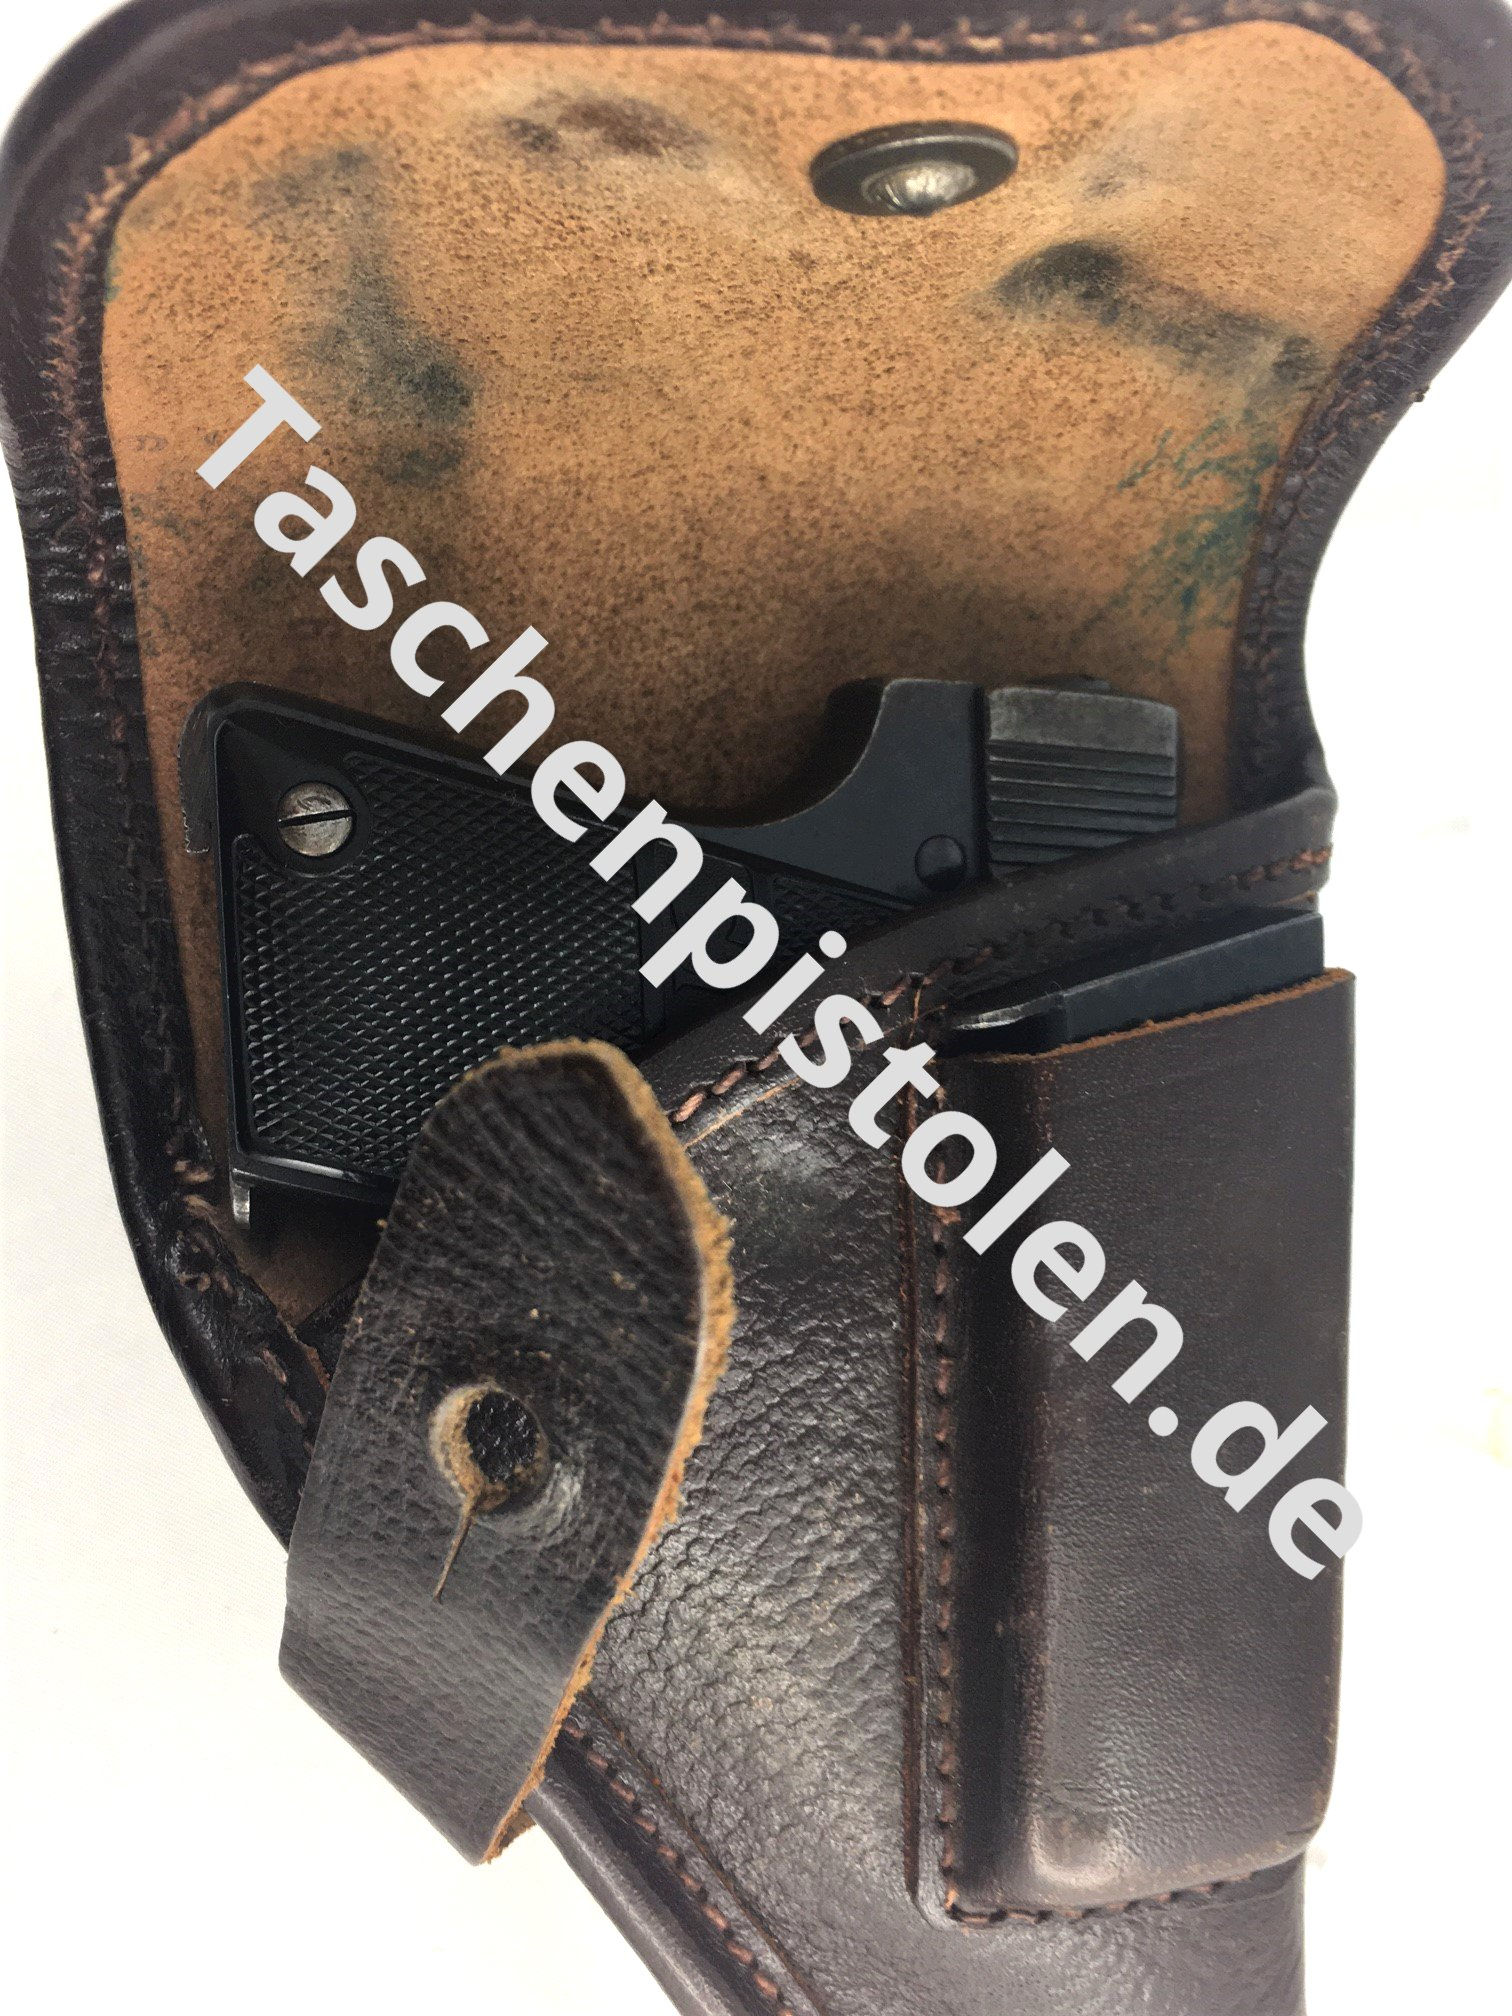 Stock WTP im Holster